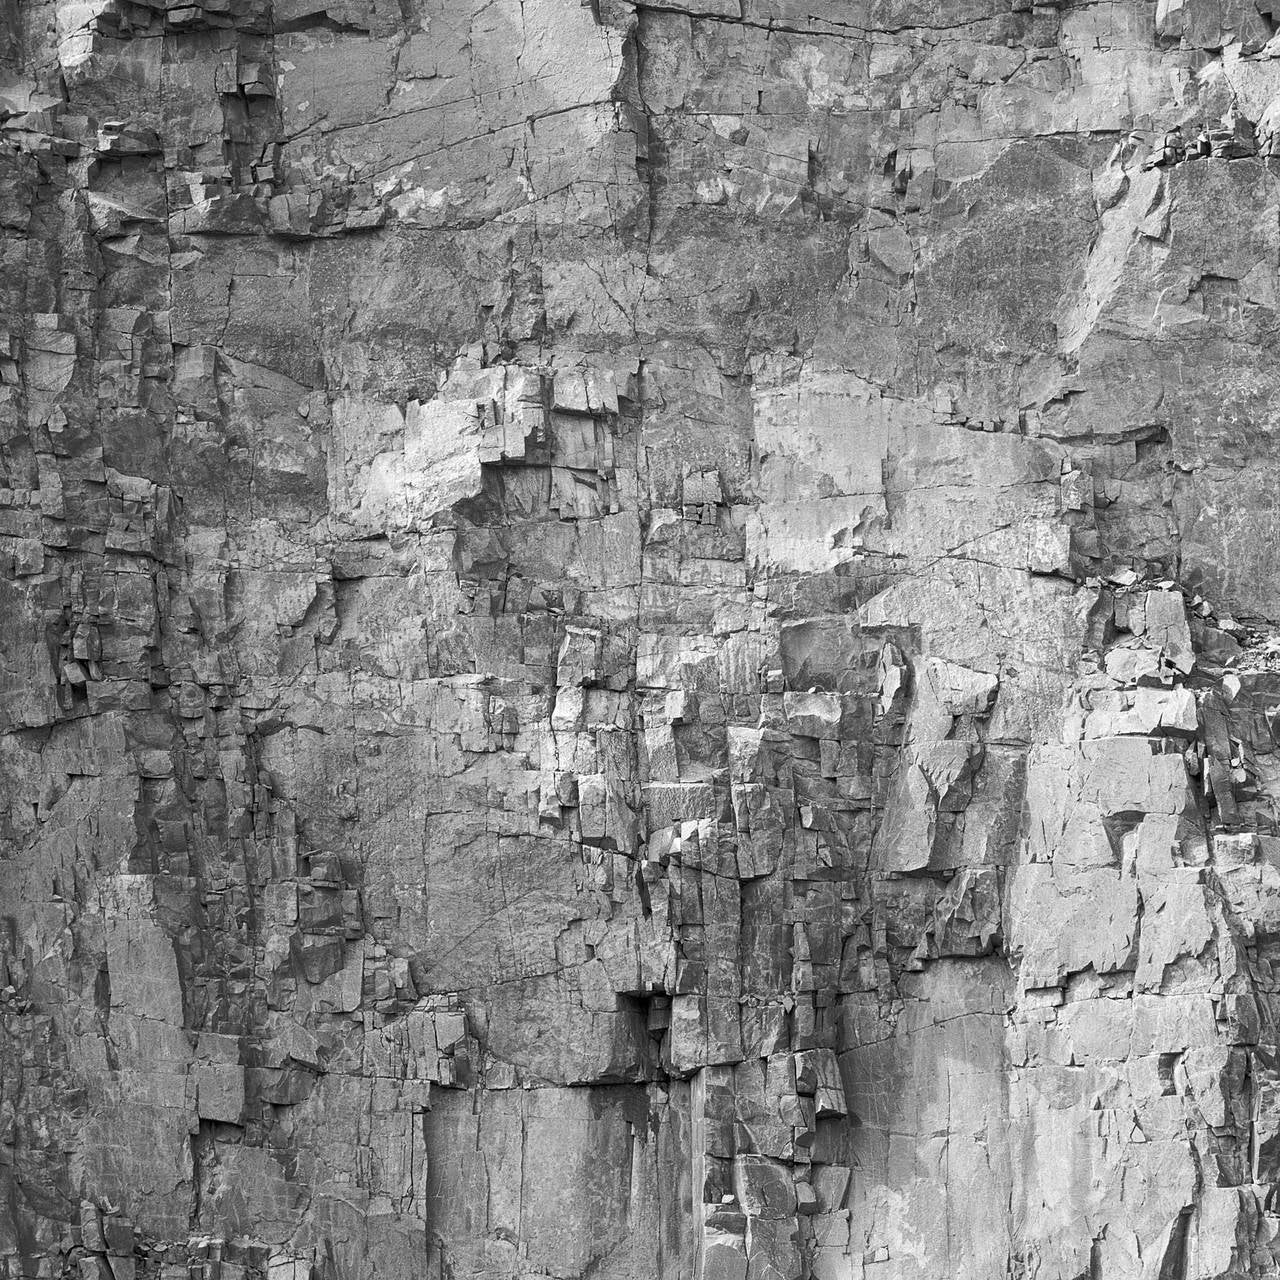 Andrew buck rockface 30 large square black white photograph